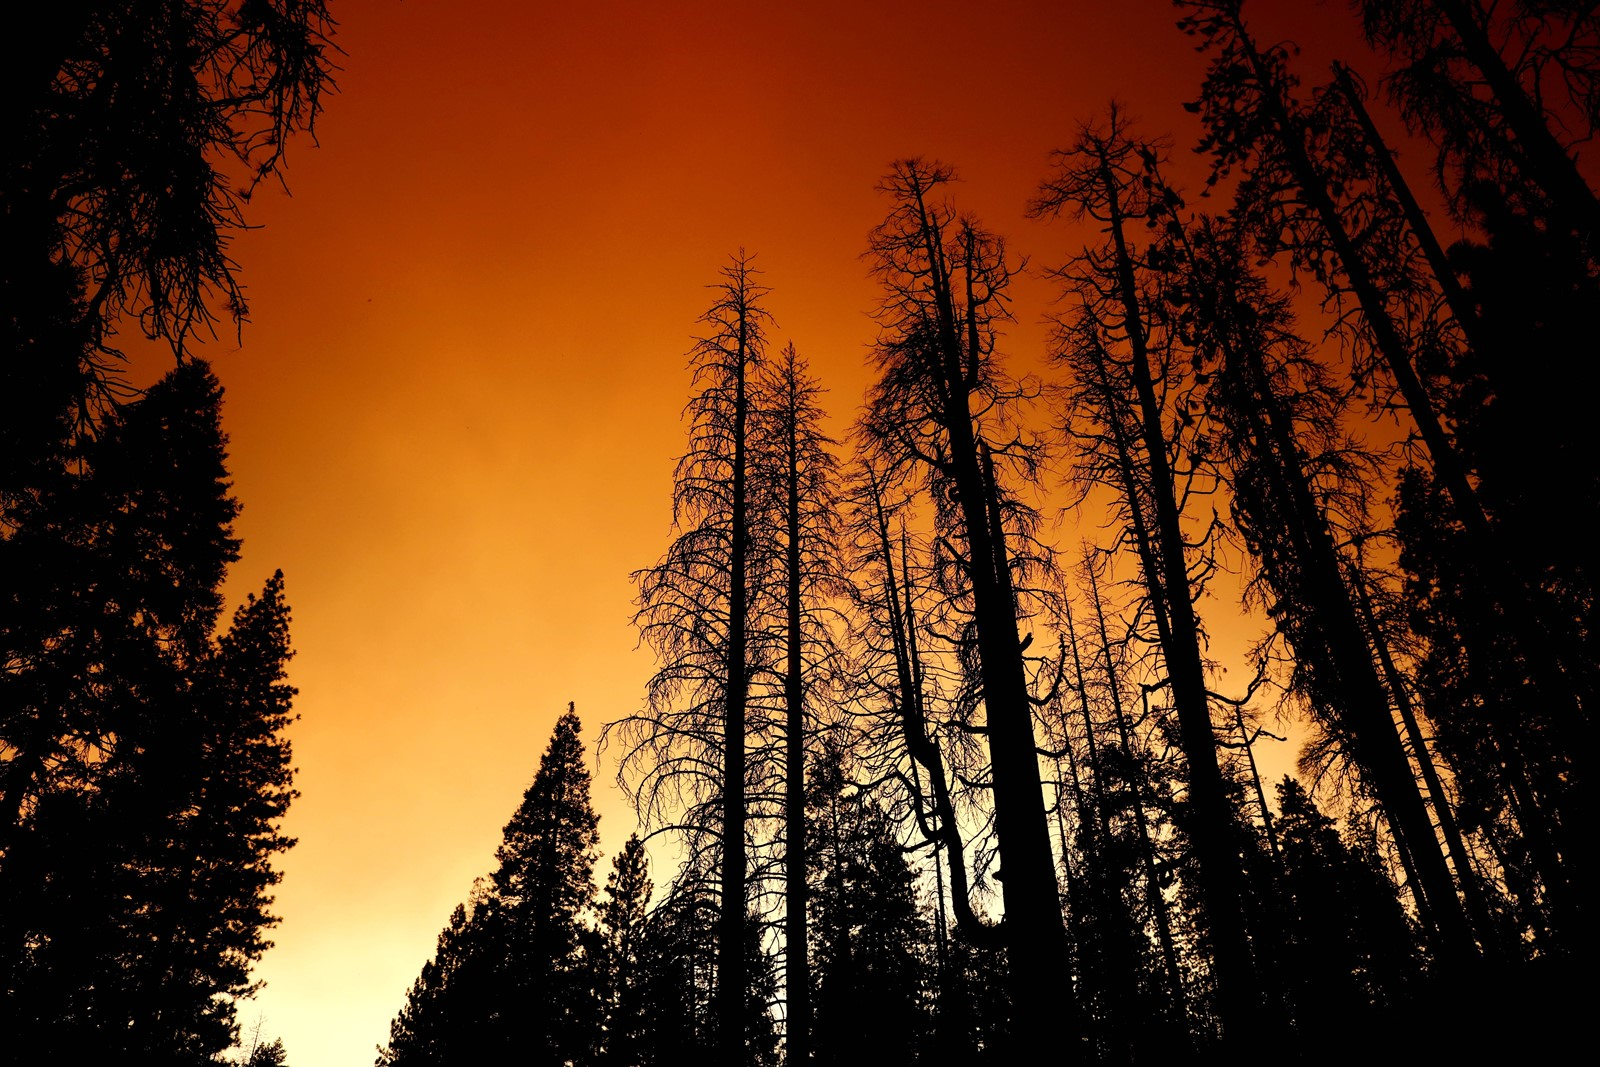 Dead trees are shrouded in smoke from the blaze, which has burned more than 73,560 acres. — Photograph: Gary Coronado/Los Angeles Times.